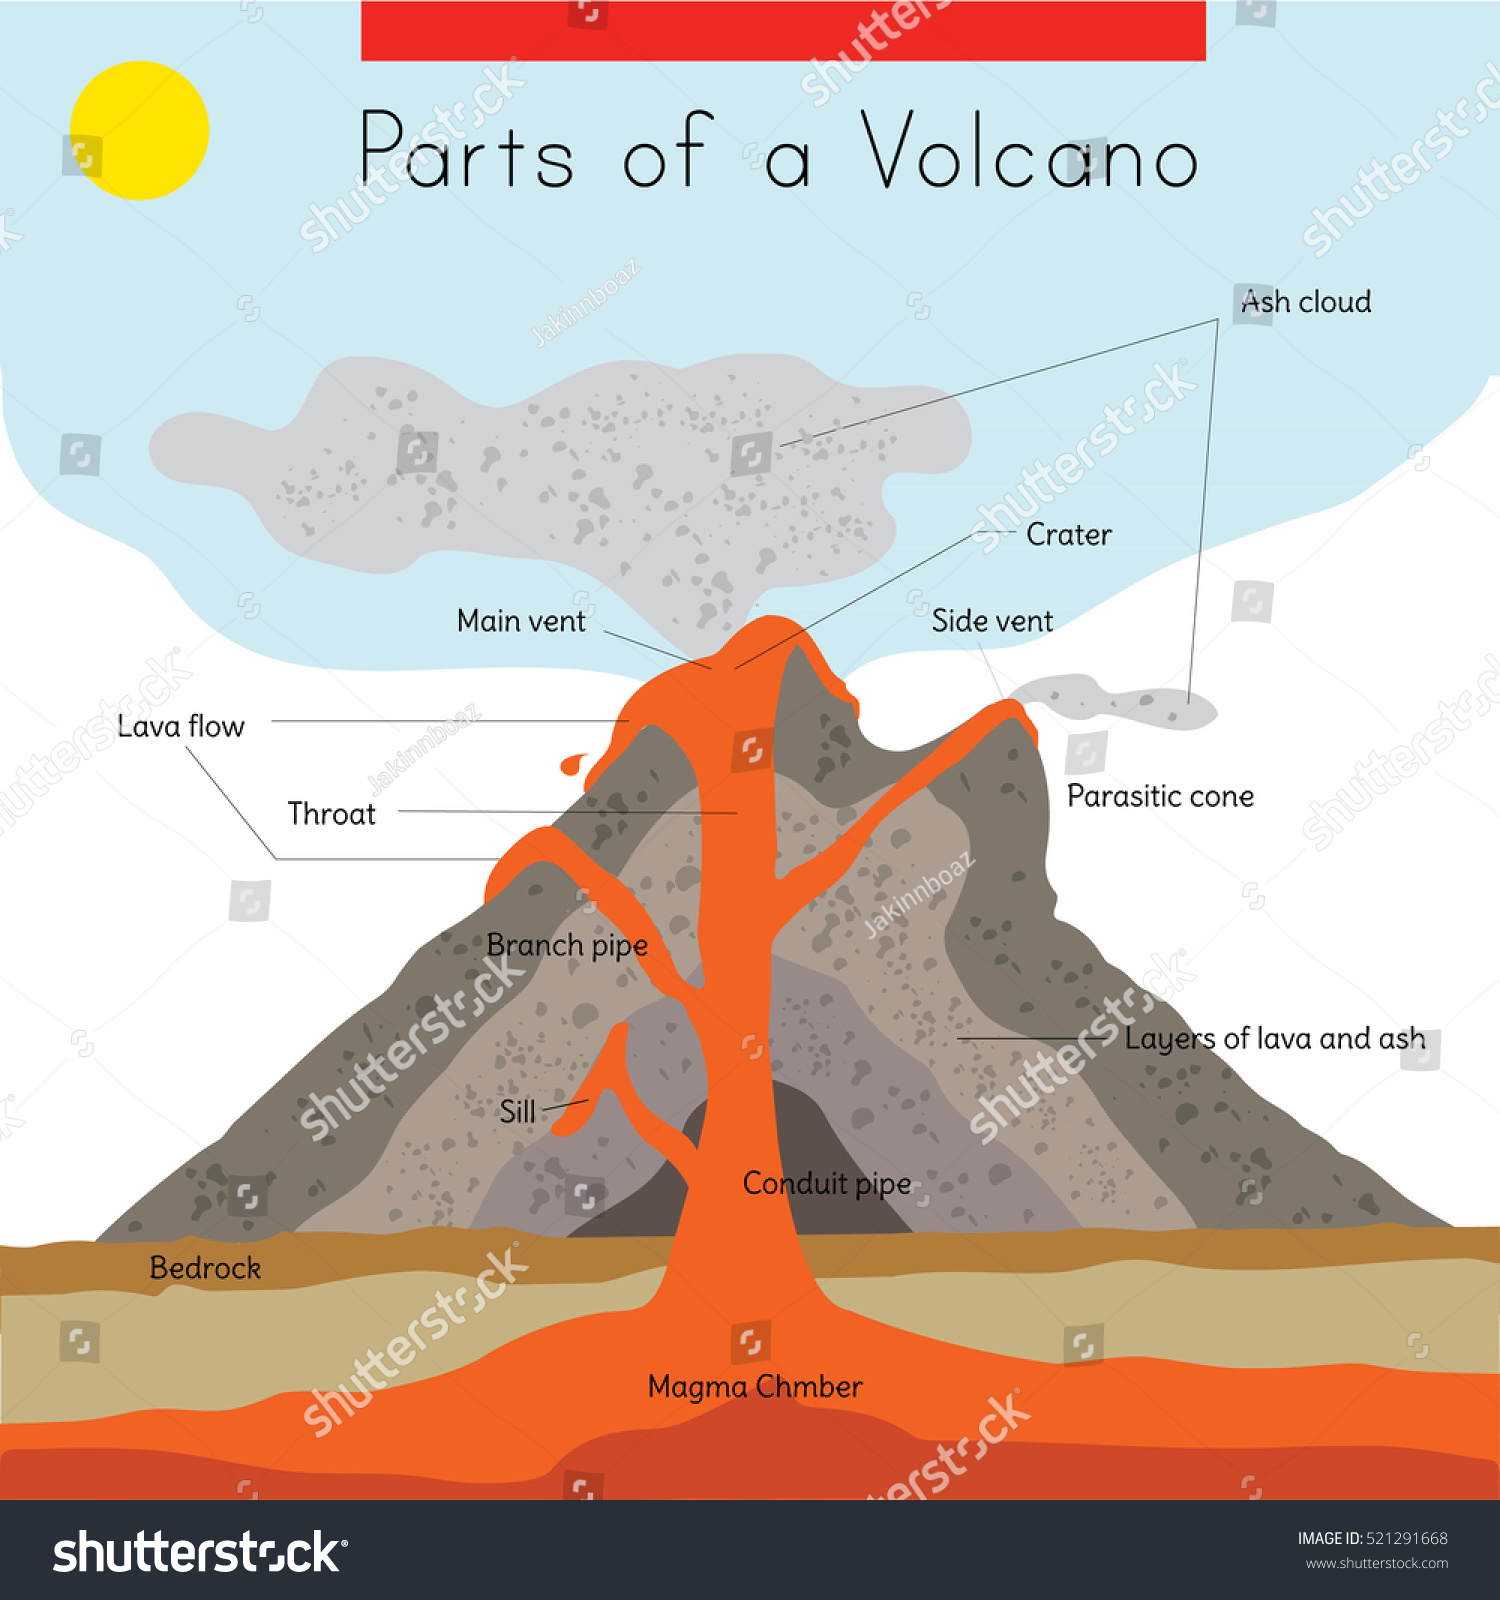 Uncategorized Parts Of A Volcano Worksheet diagram interior exterior parts volcano stock vector 521291668 a of the and volcano